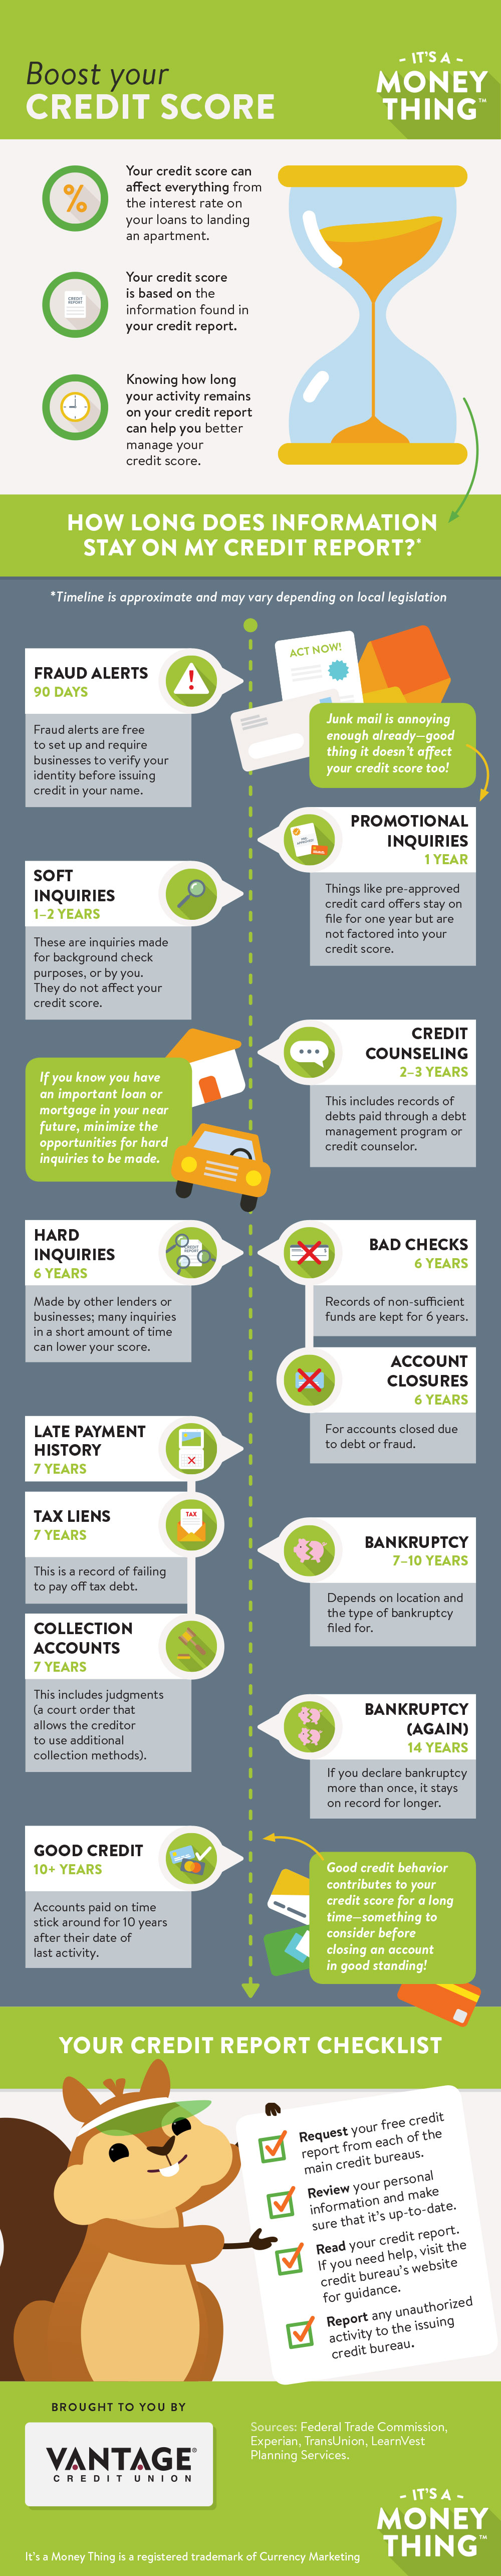 Vantage One Credit Union >> Quick Tips to Boost Your Credit Score Infographic — Vantage Credit Union